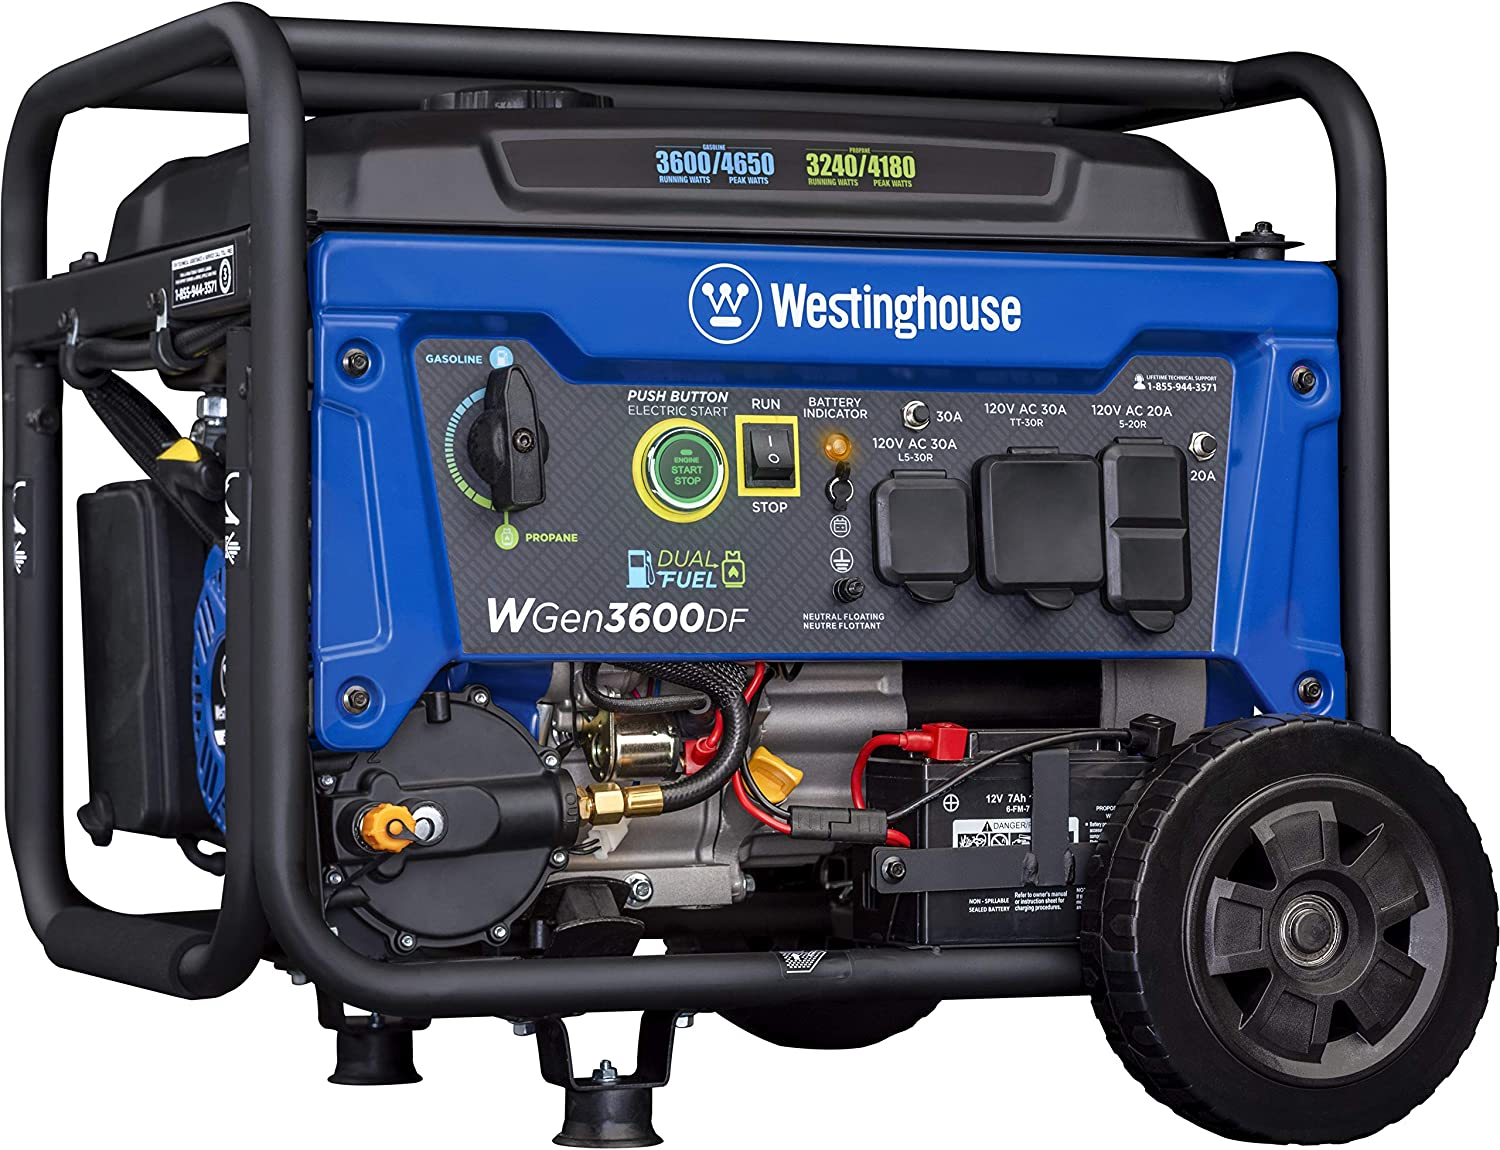 Westinghouse WGen3600DF Dual Fuel (Gas and Propane) Electric Start Portable Generator 3600 Rated 4650 Peak Watts, RV Ready, CARB Compliant